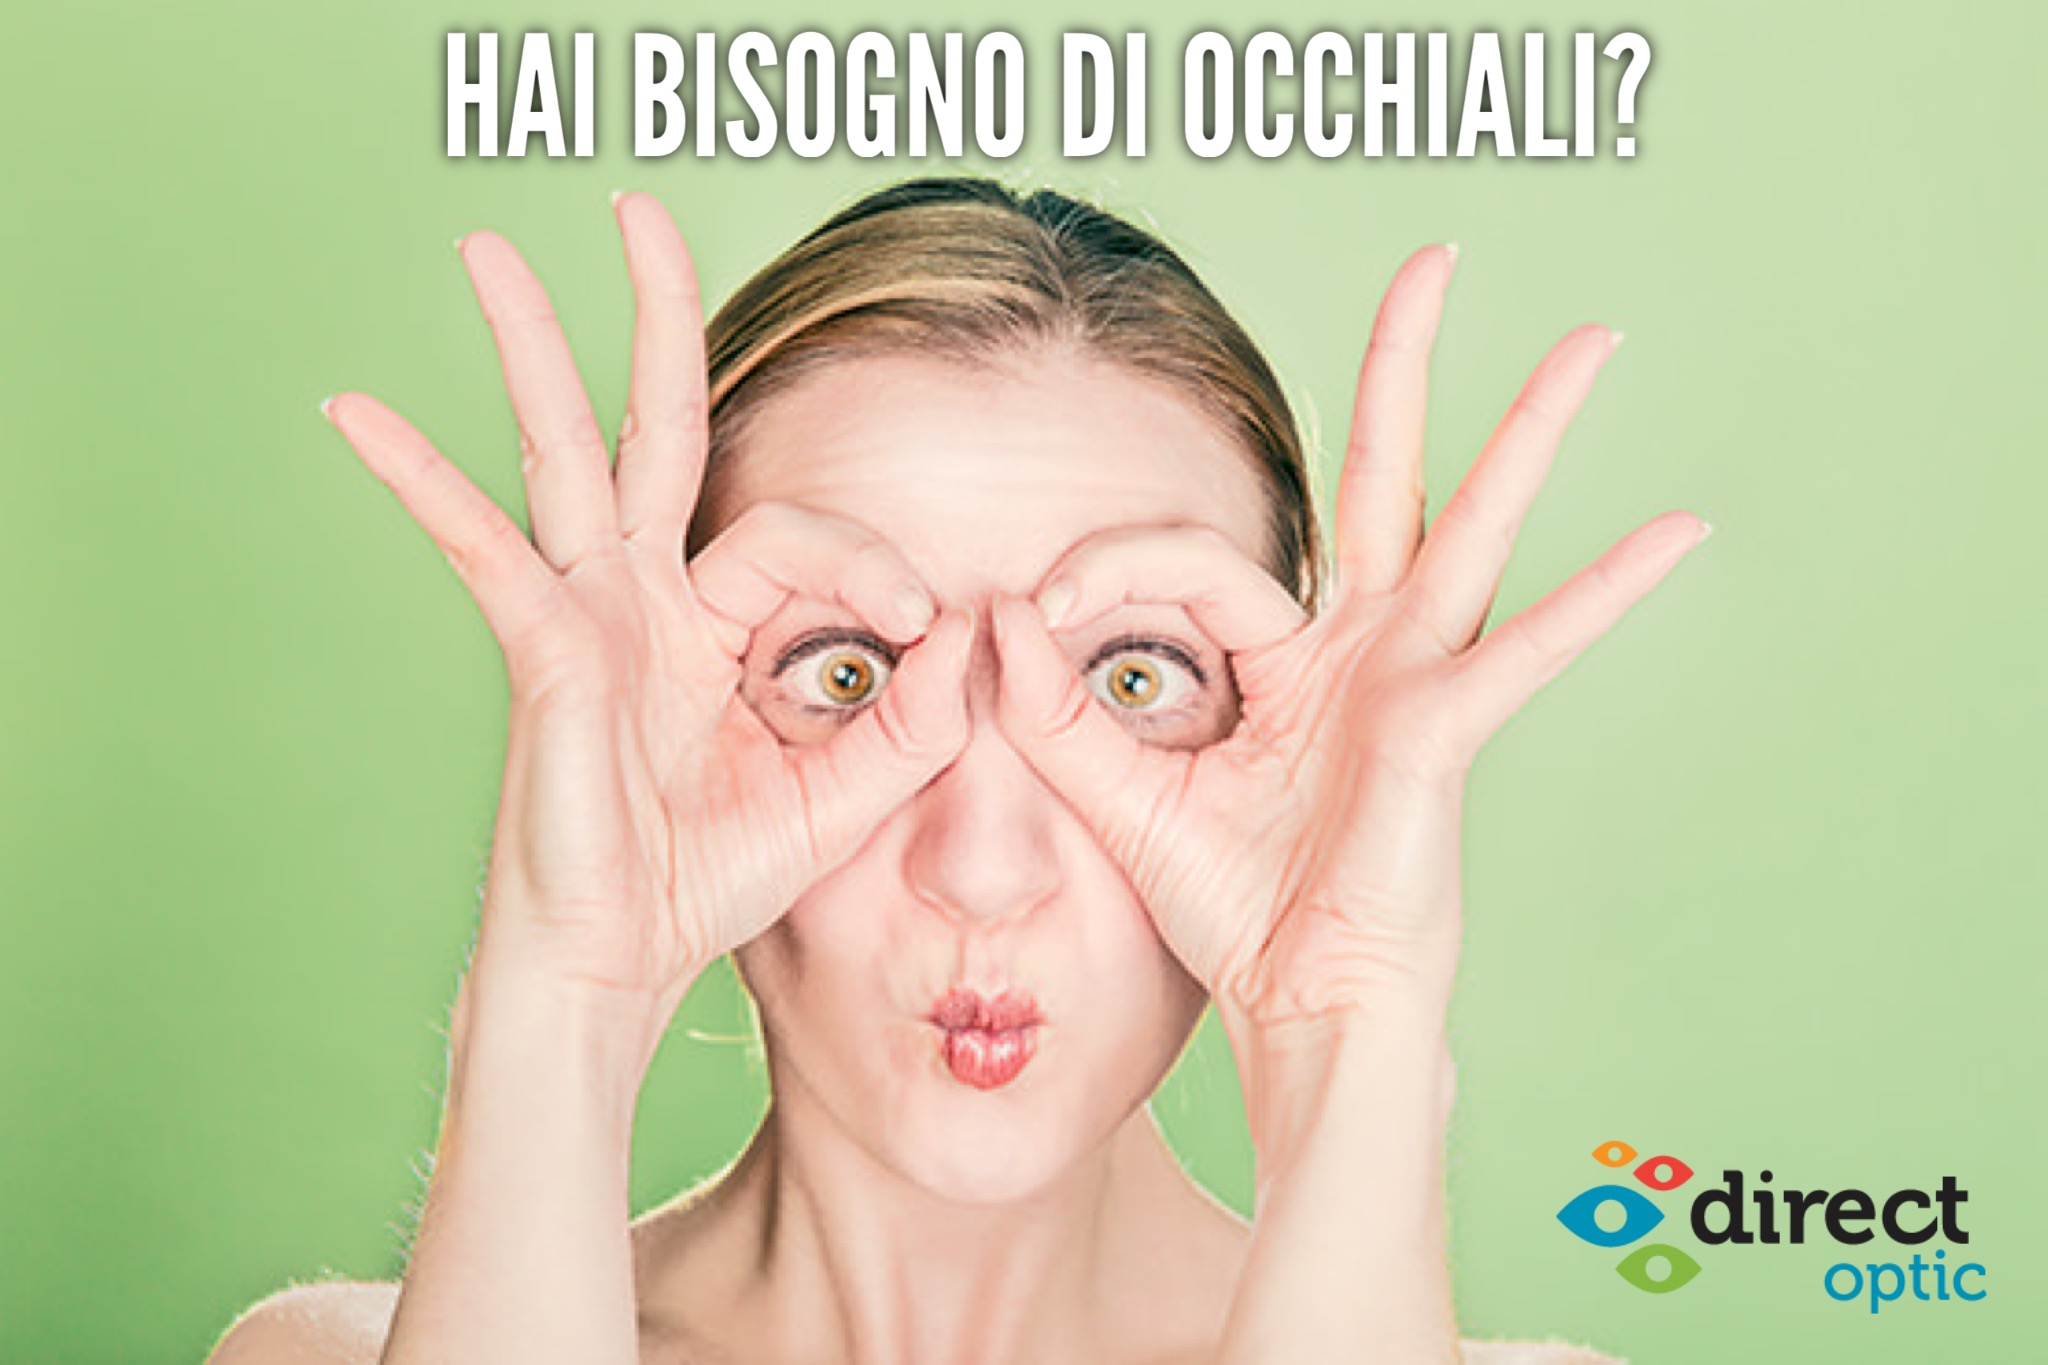 Direct Optic occhiali online lowcost